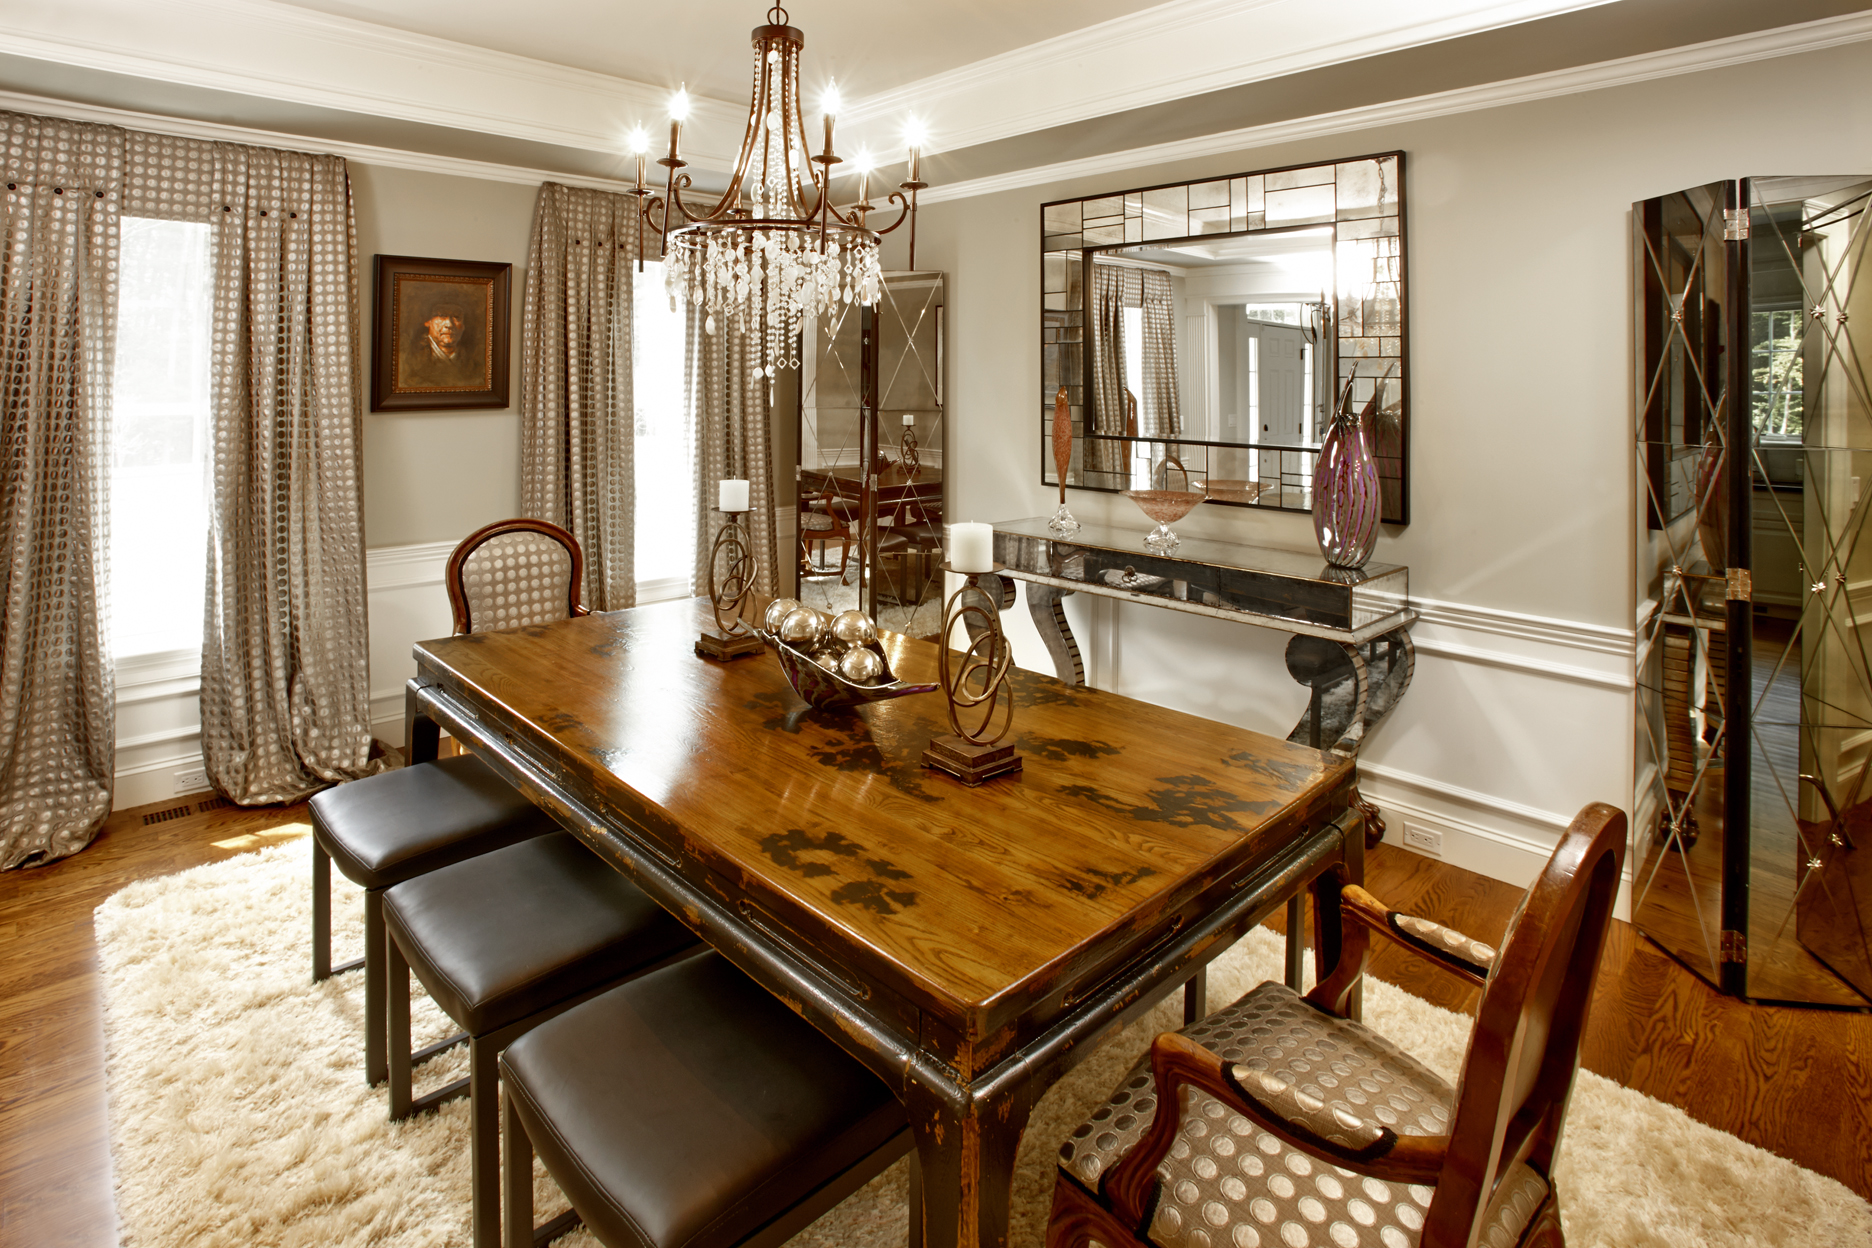 luxe home decor pj amp company staging and interior decorating luxe home decor ideas pinterest